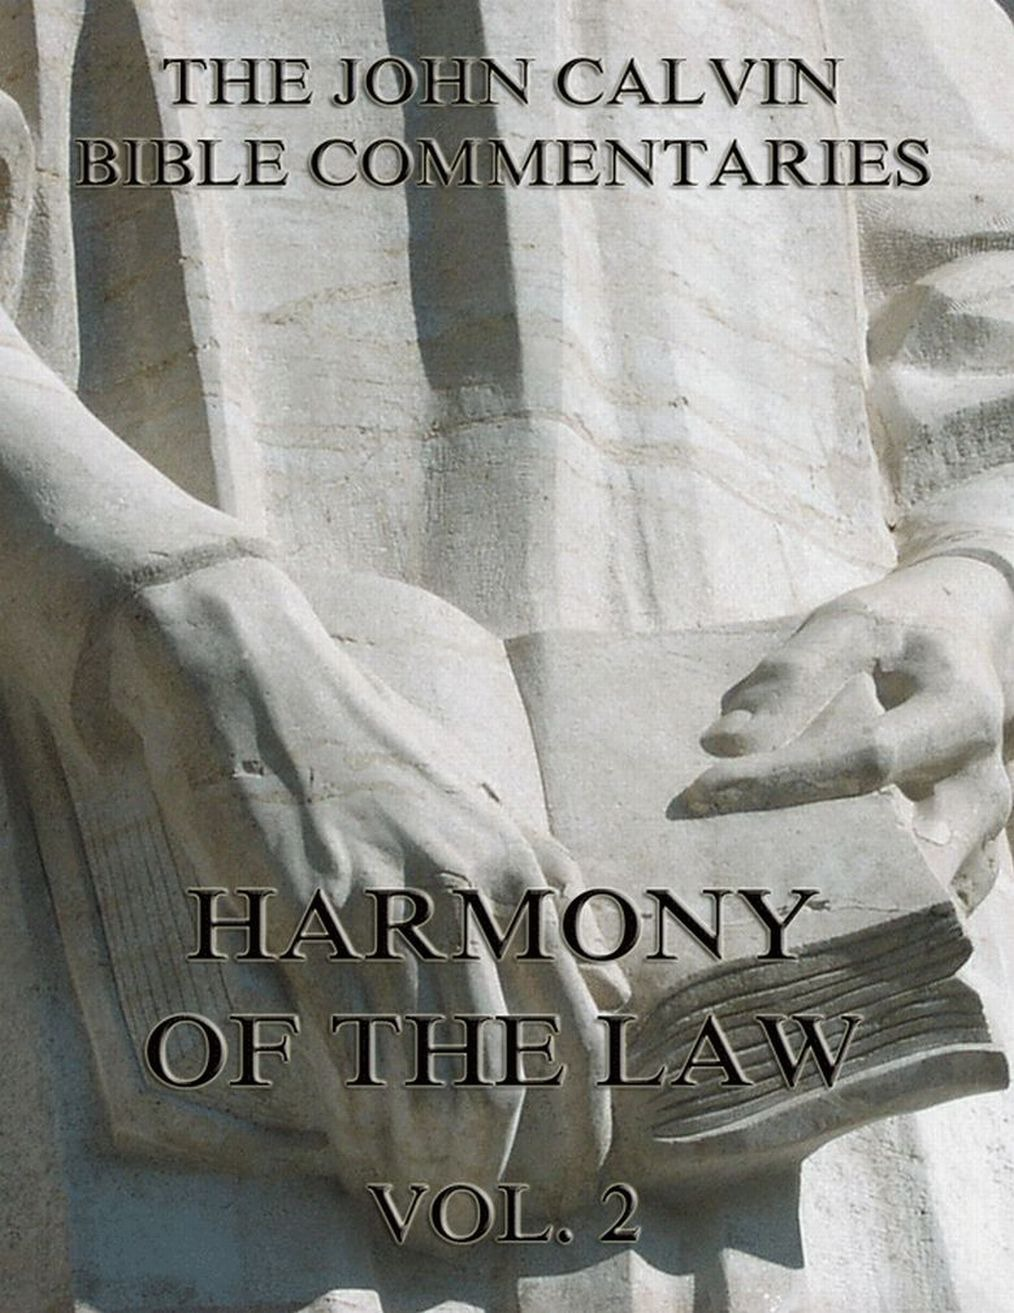 John Calvin John Calvin's Commentaries On The Harmony Of The Law Vol. 2 ruskin john on the old road vol 2 of 2